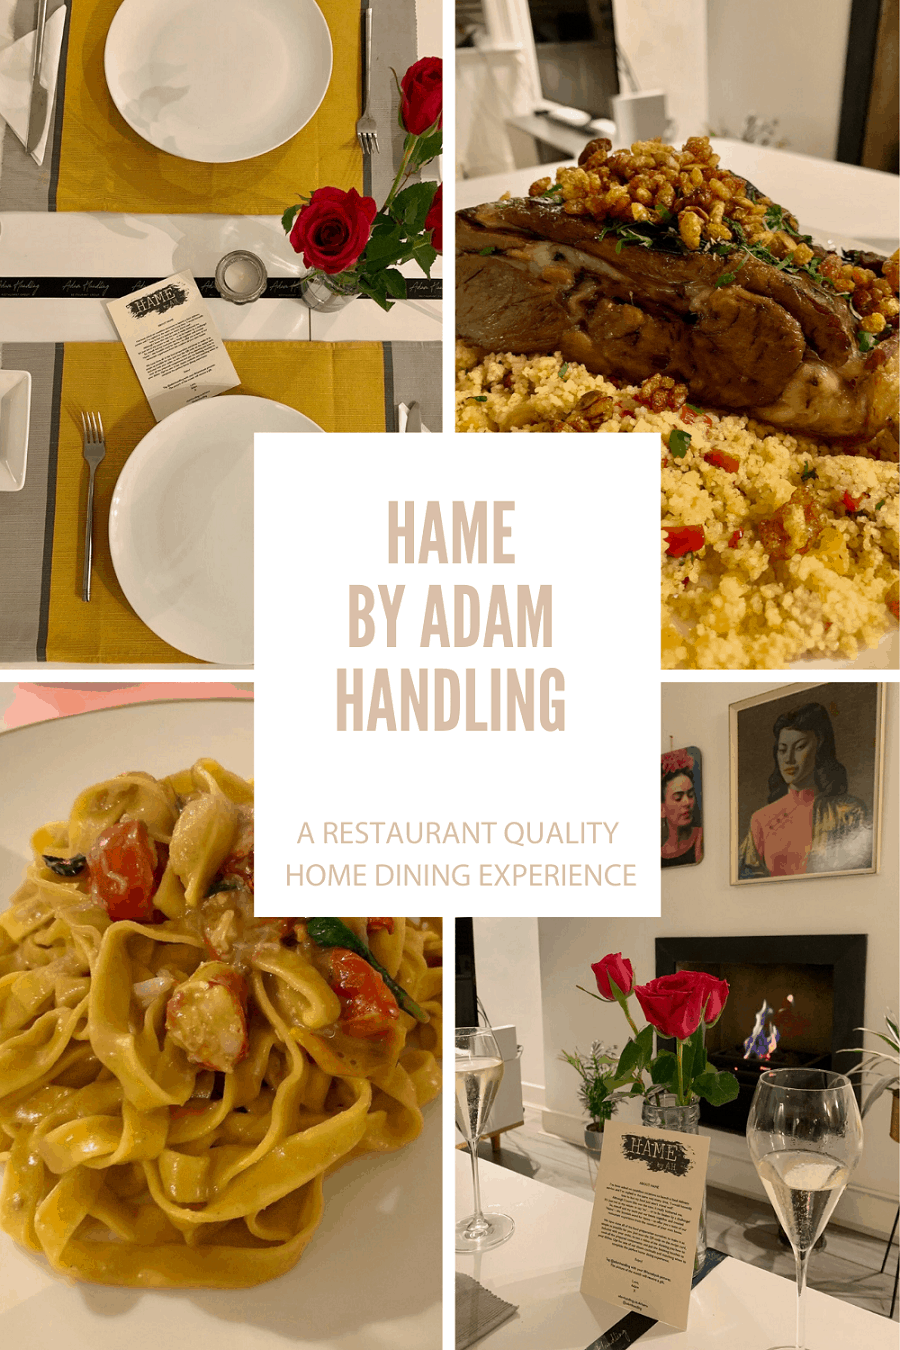 Hame by Adam Handling, a restaurant quality dining experience